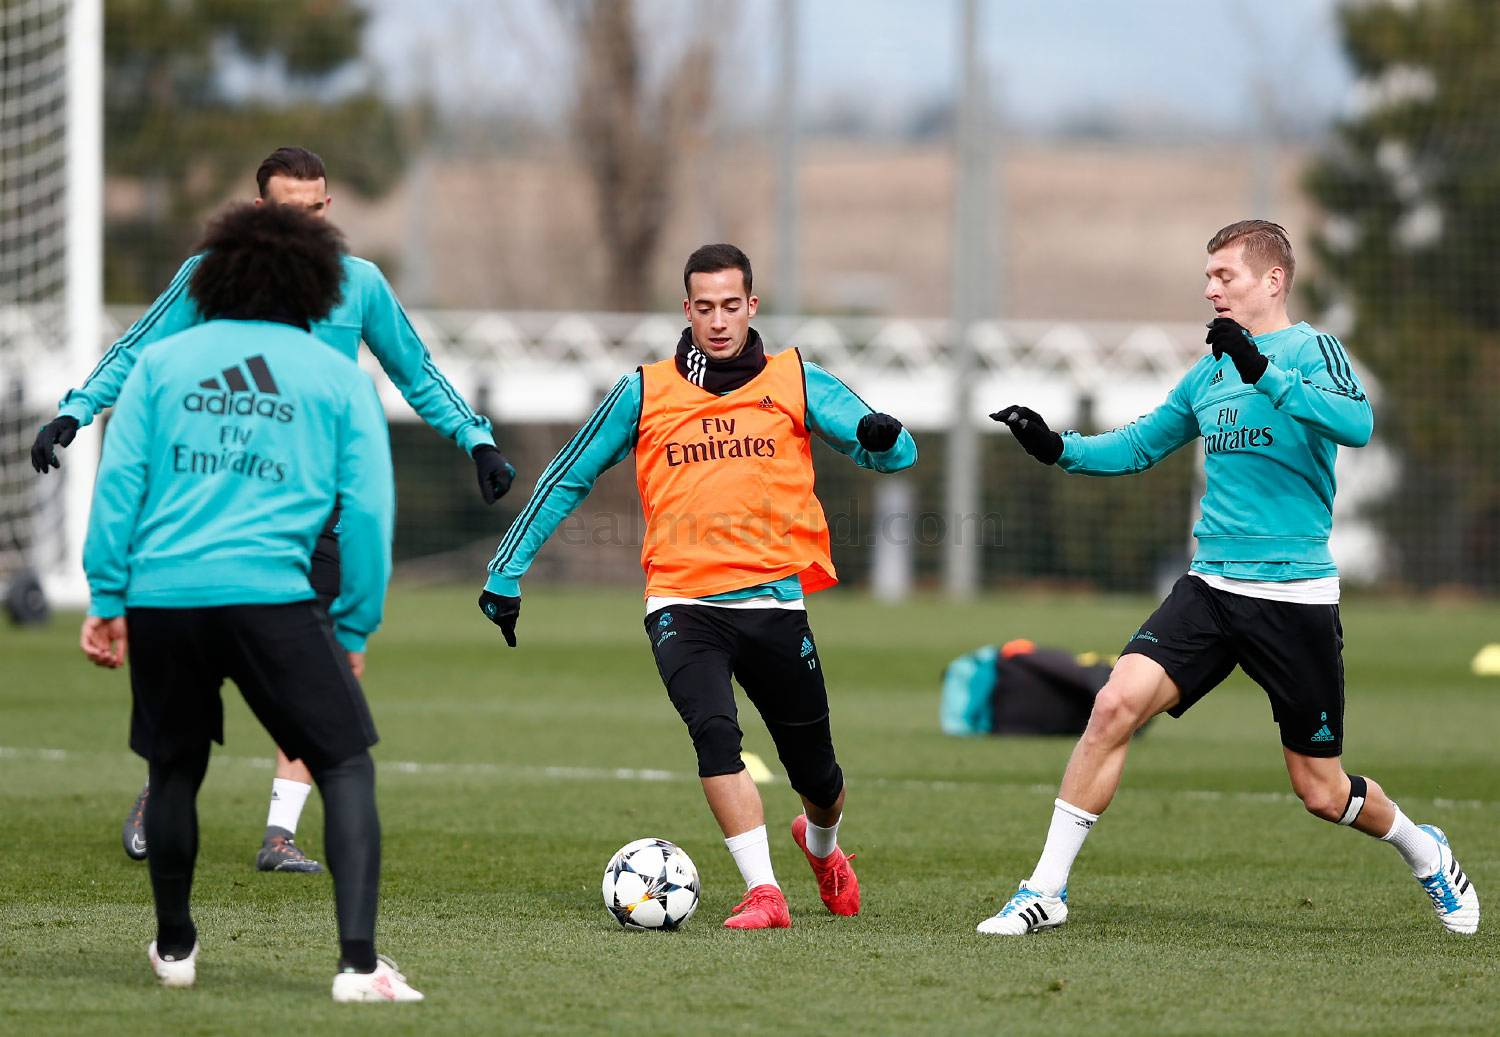 Real Madrid - Entrenamiento del Real Madrid - 04-03-2018